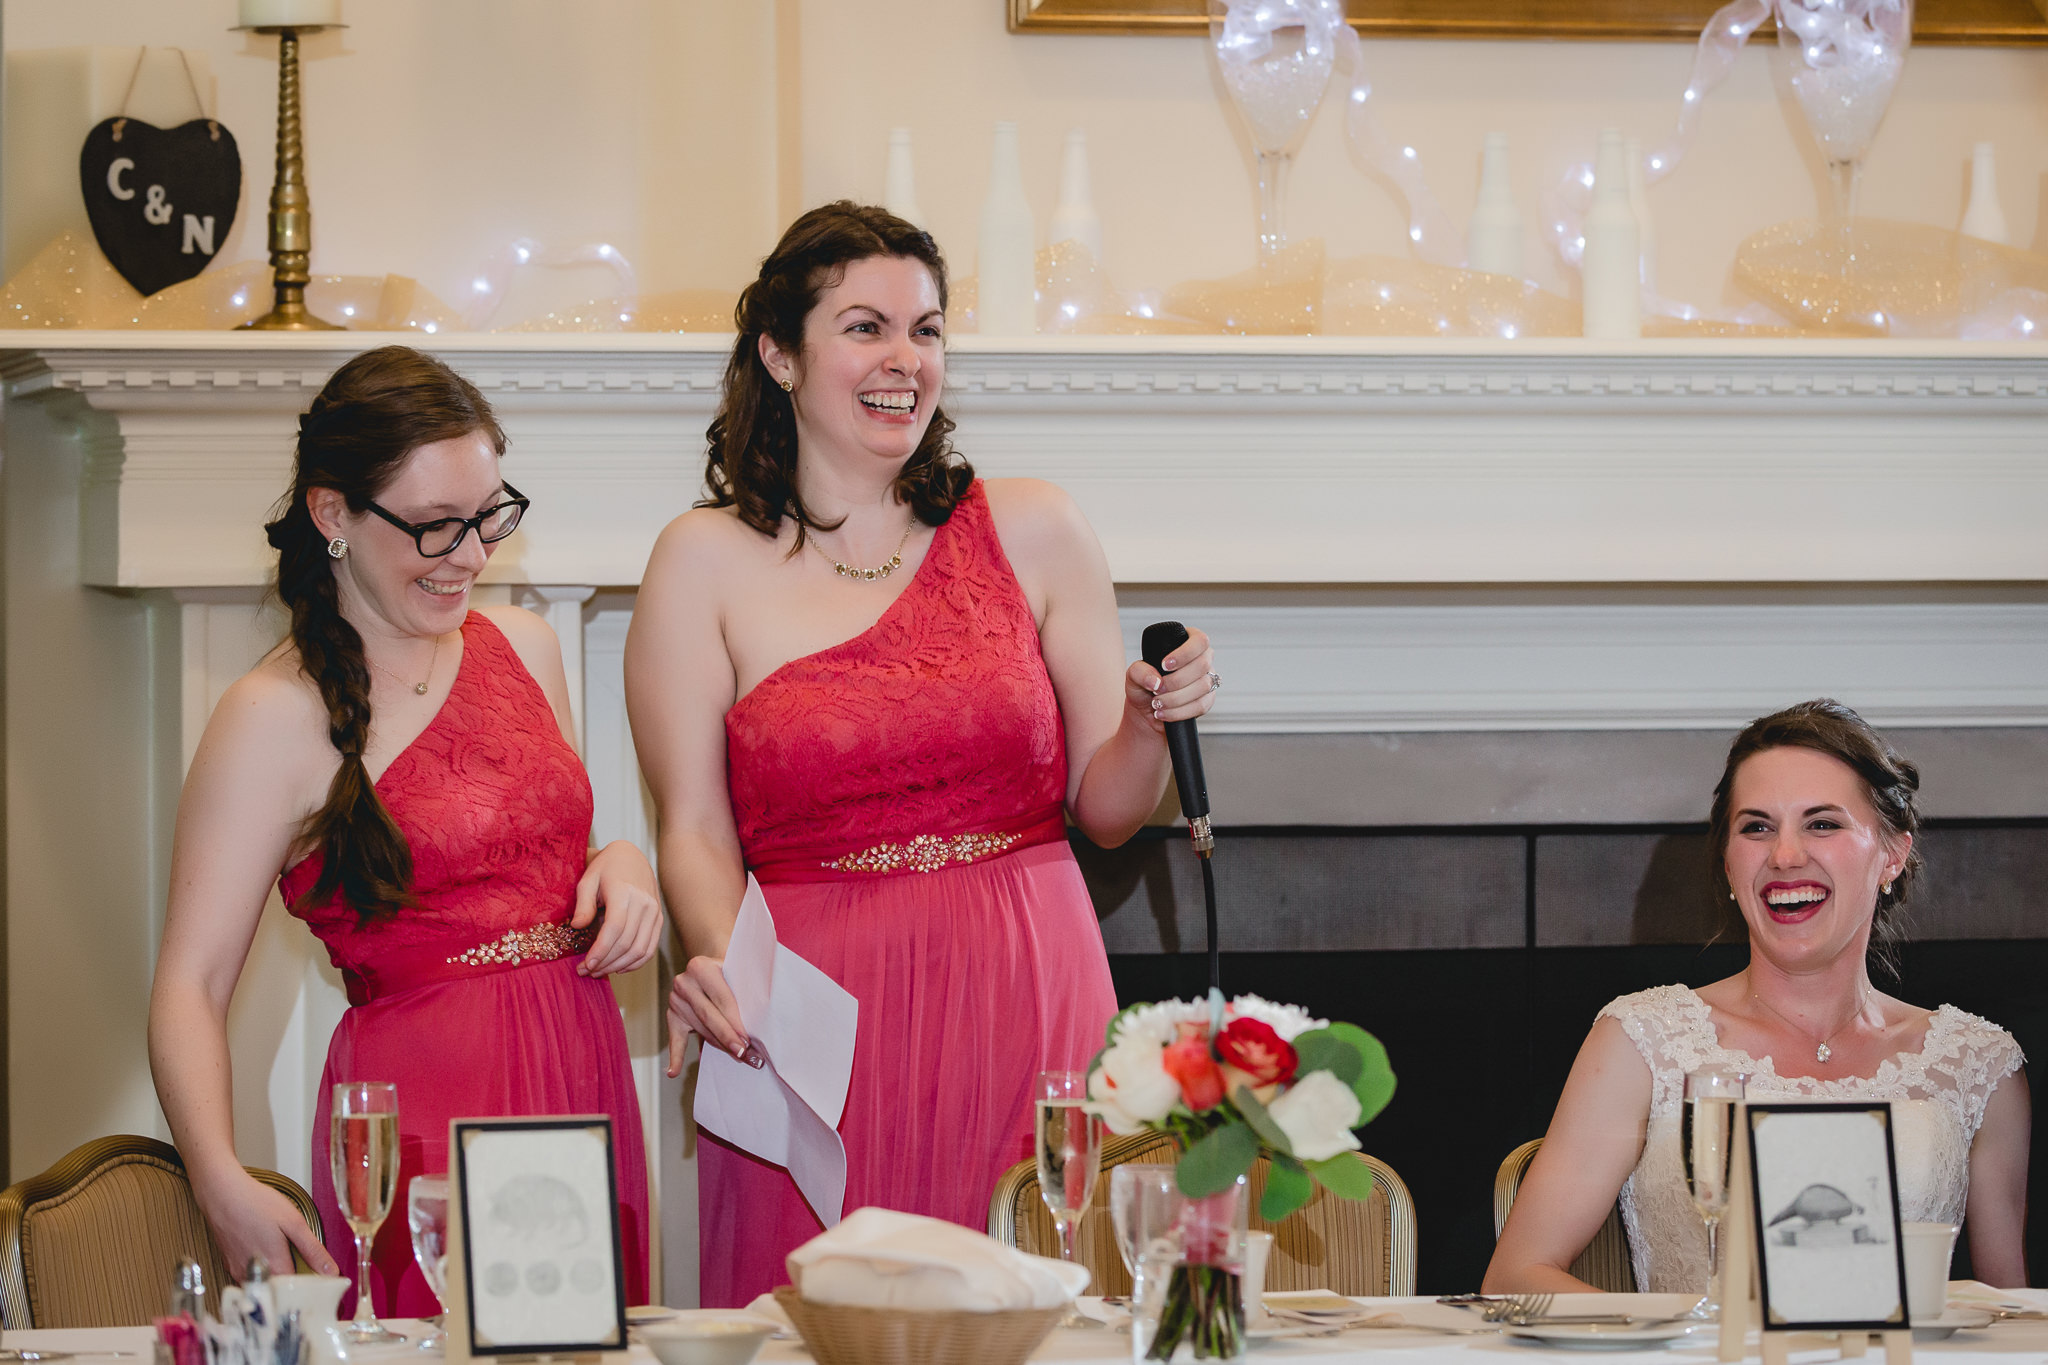 Maid of honor toasts the bride at a Shannopin Country Club wedding reception